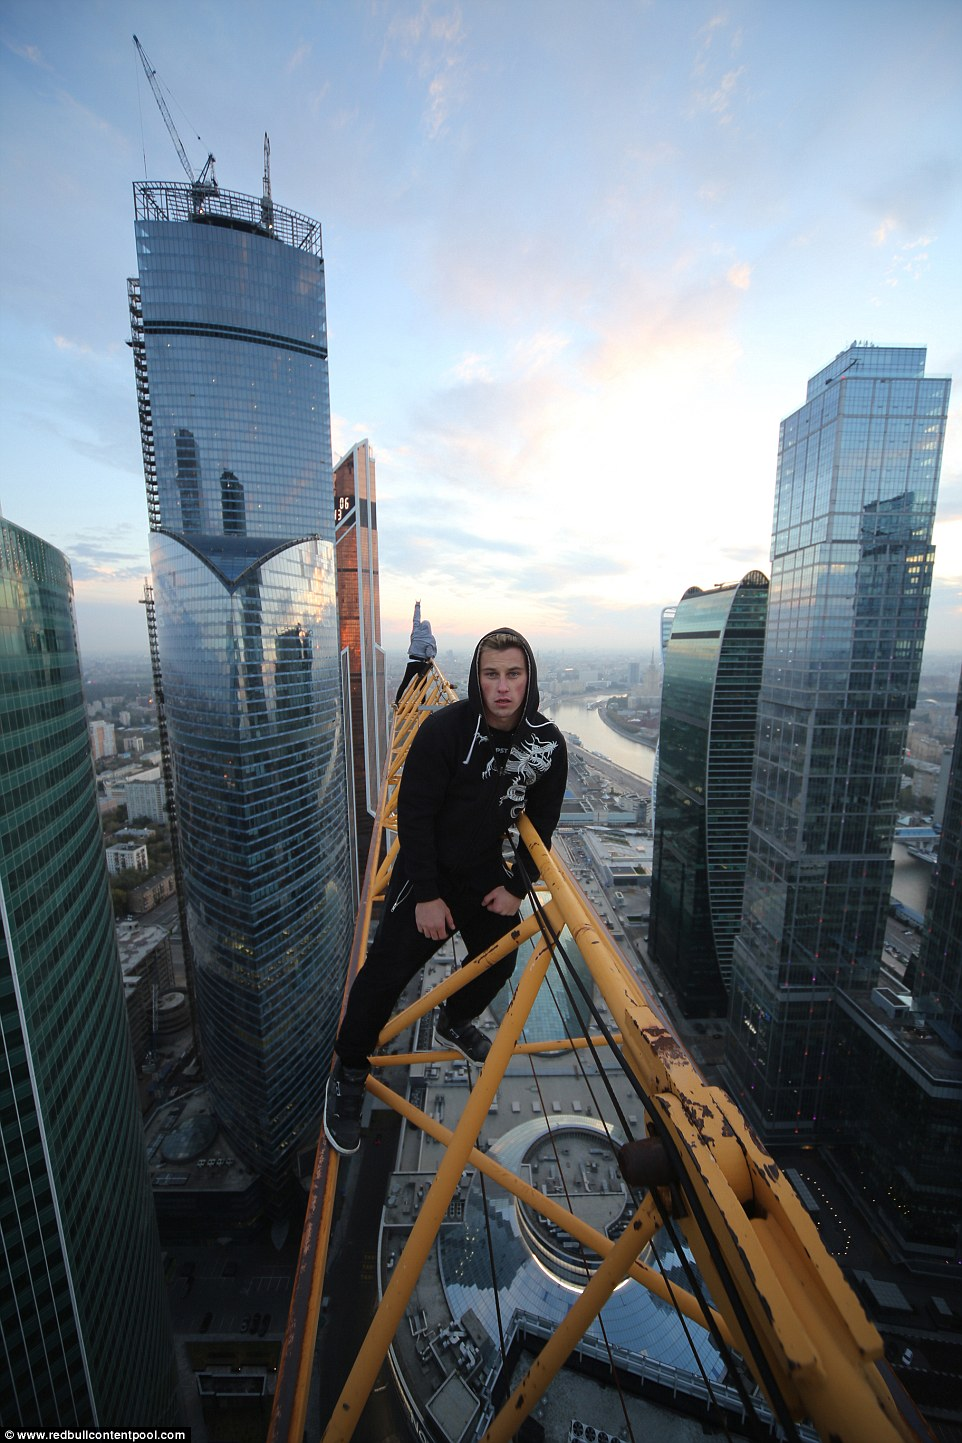 The financial district in Moscow provides the risk-takers with the perfect opportunity to scale the highest buildings